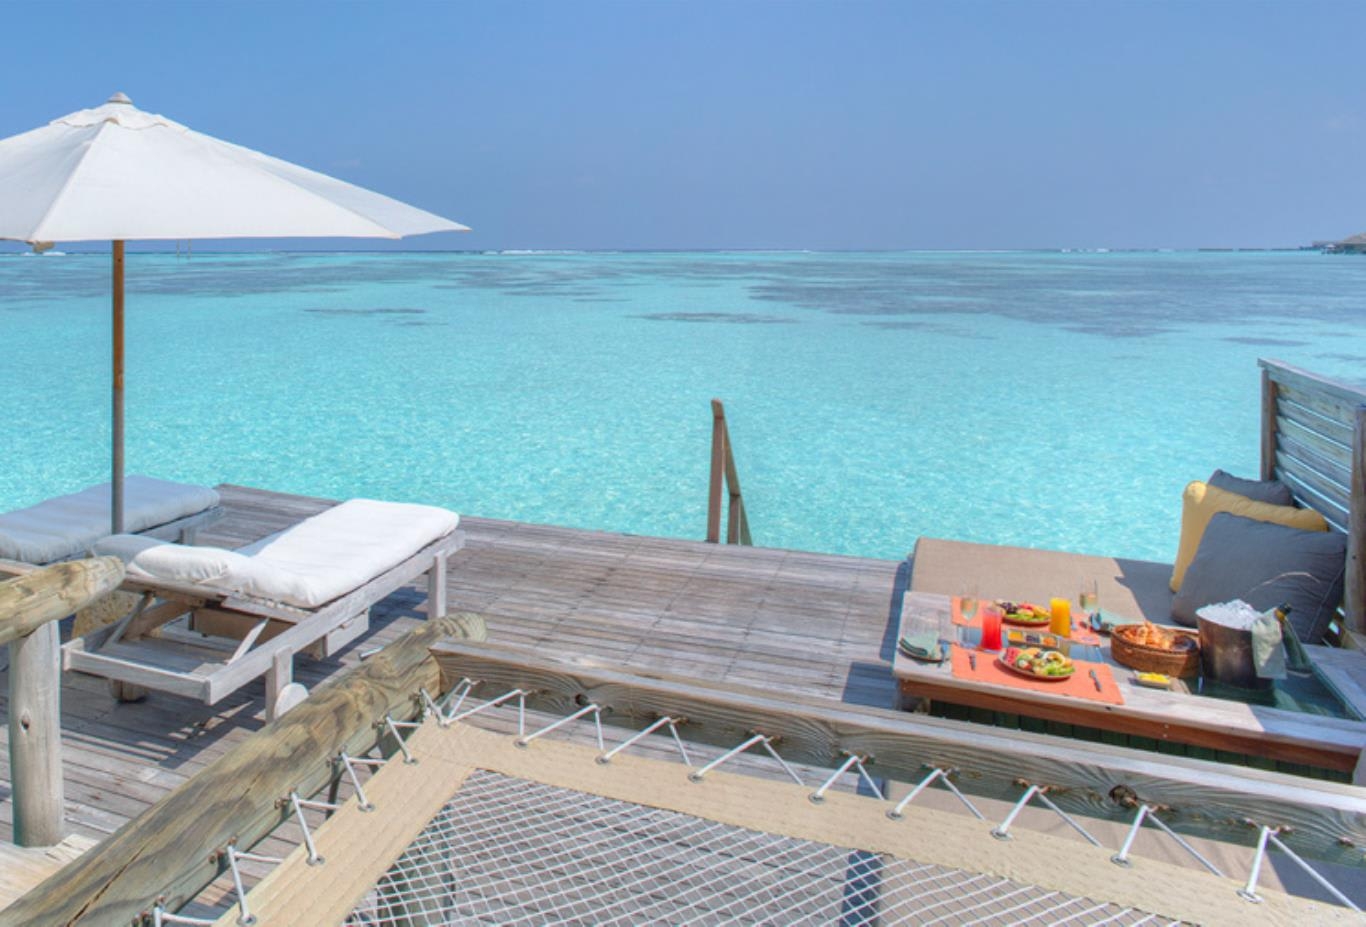 Villa outdoor sun deck and catamaran nets